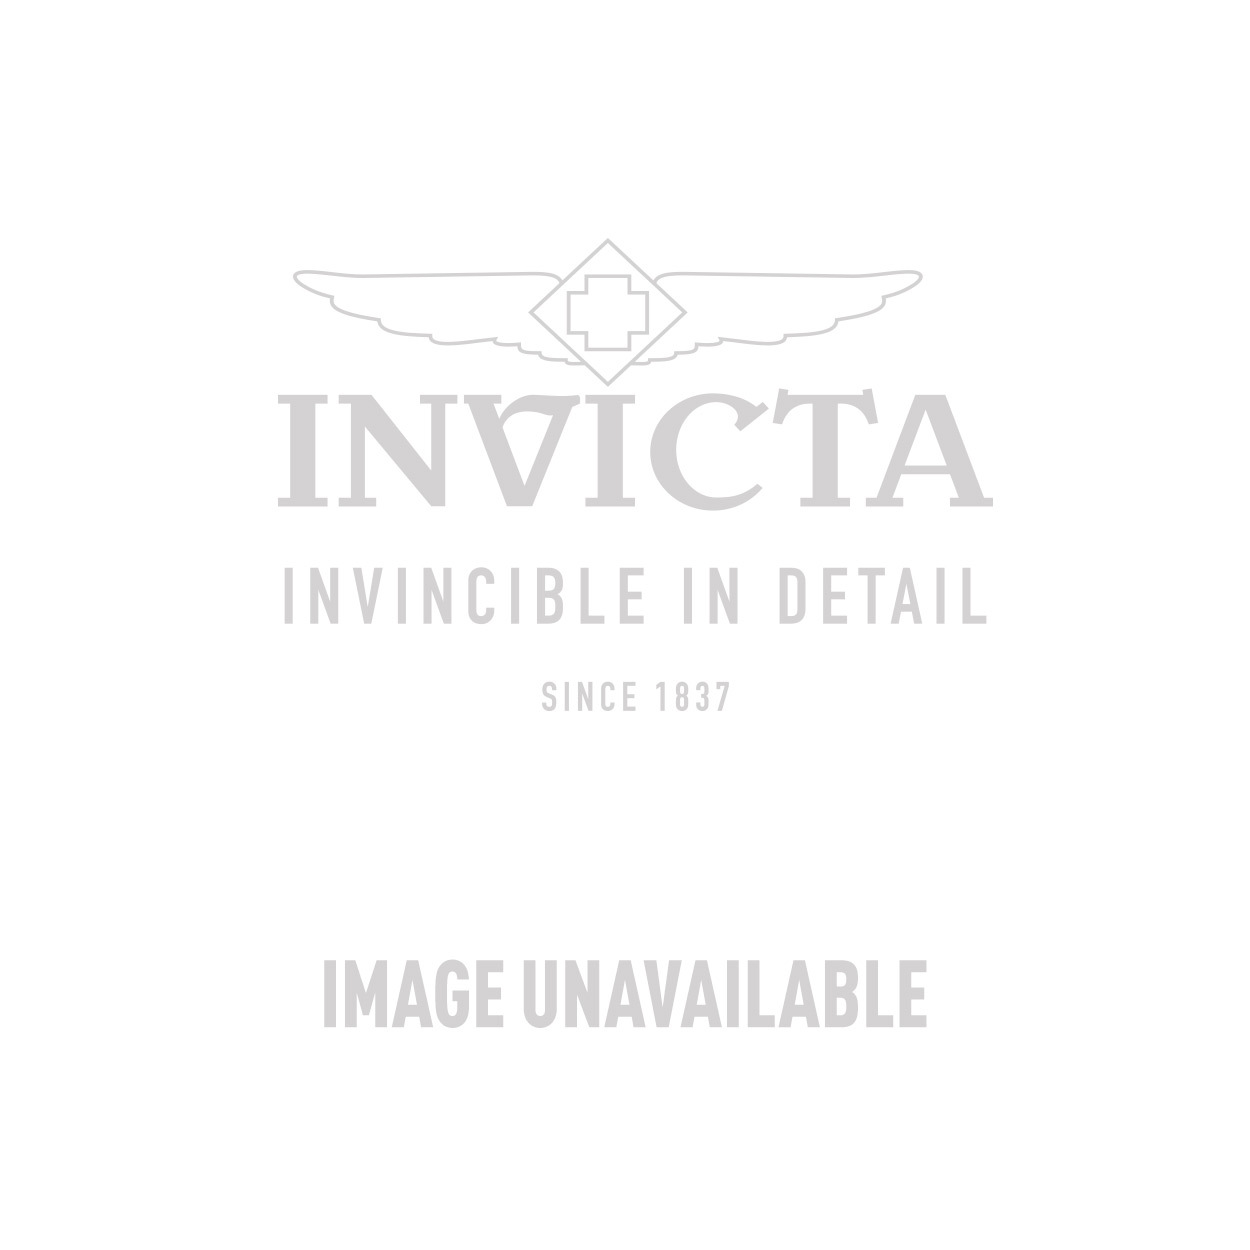 Invicta I-Force Quartz Watch - Titanium case with Black, Red tone Stainless Steel, Rifle band - Model 18695